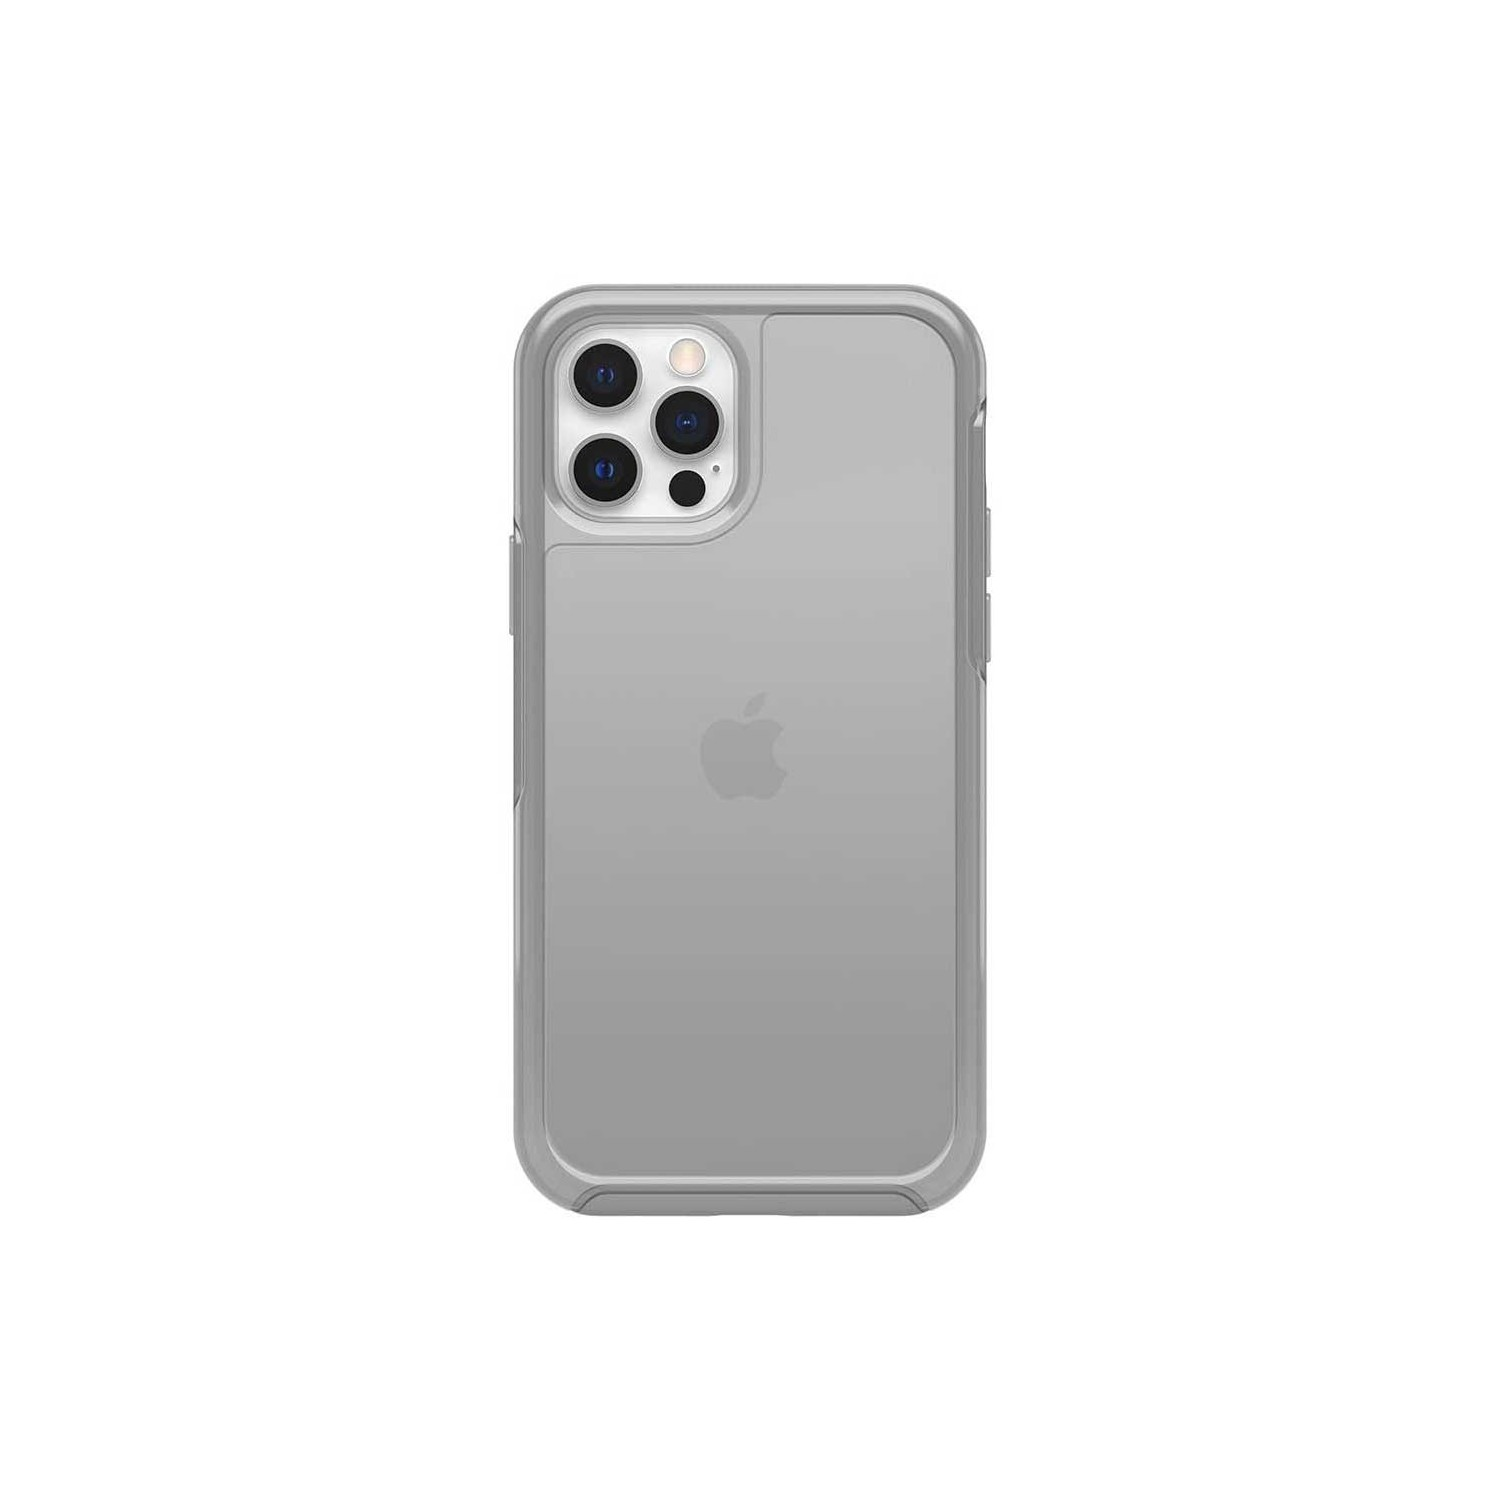 Case - Otterbox Commuter for iPhone 12 White Frost / Gray